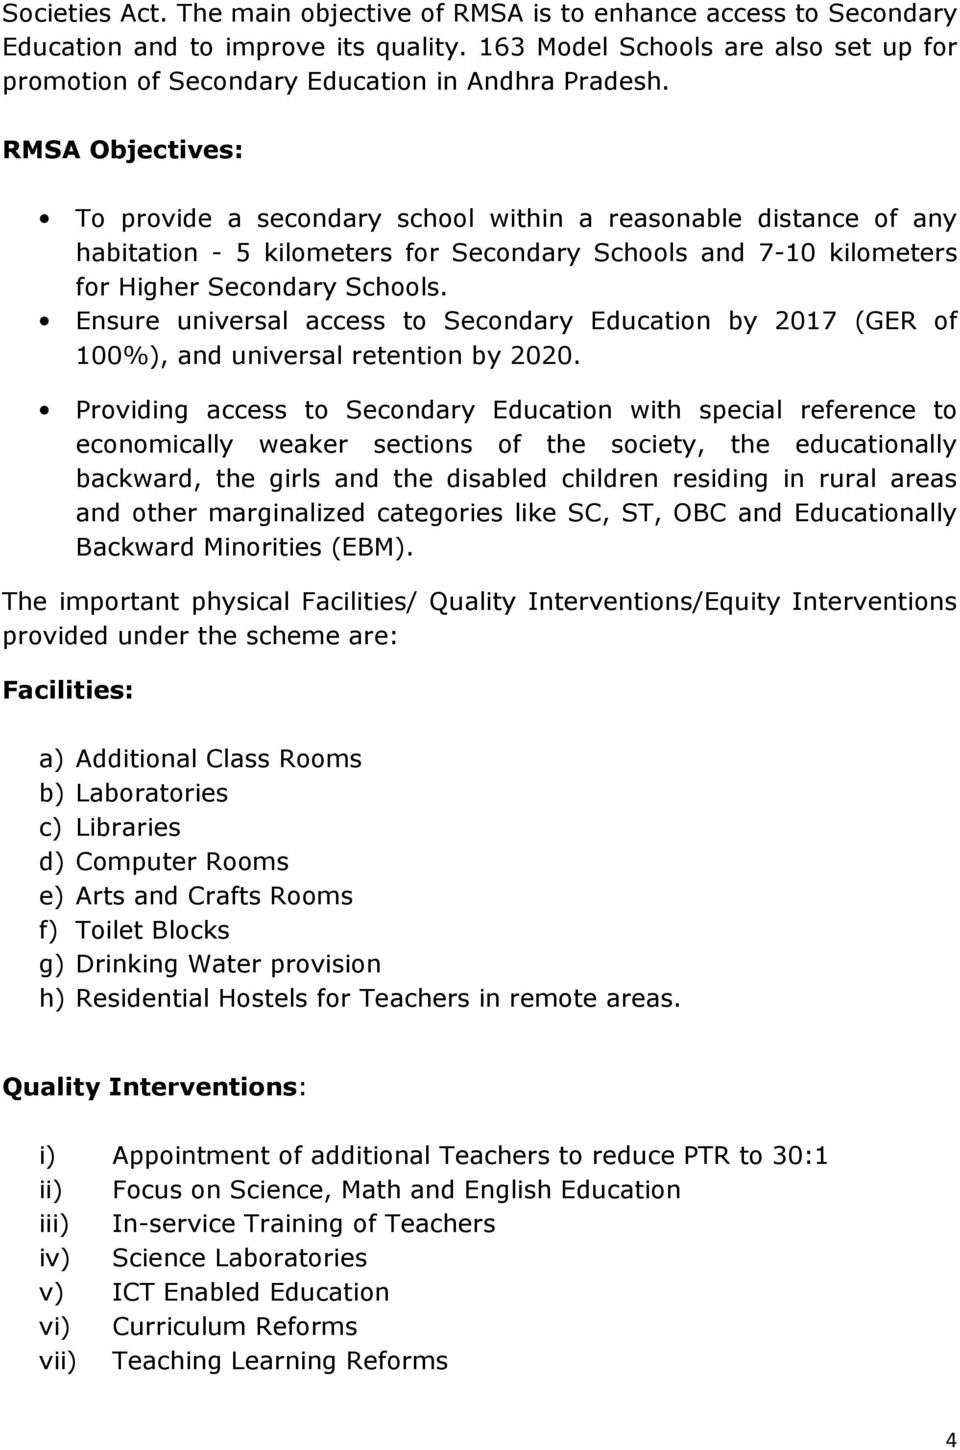 RMSA Objectives To provide a secondary school within a reasonable distance of any habitation - 5 kilometers for Secondary Schools and 7-10 kilometers for Higher Secondary Schools.